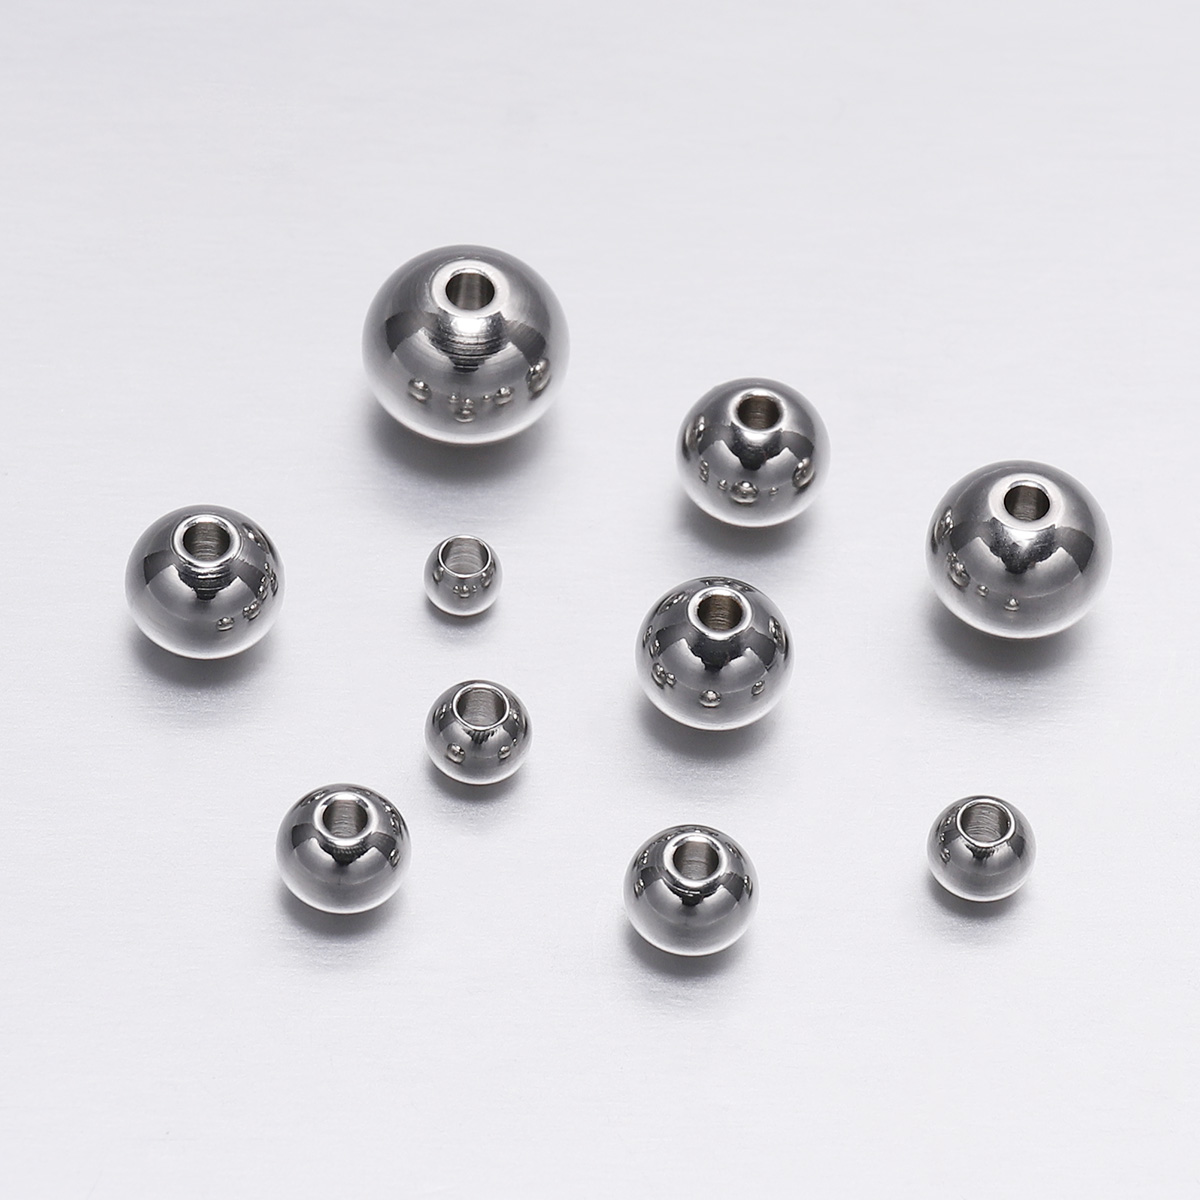 30-100pcs 3-8mm Stainless Steel Loose Spacer Beads Round Seed Big Hole Bead Findings For Jewelry Making DIY Supplies Accessories